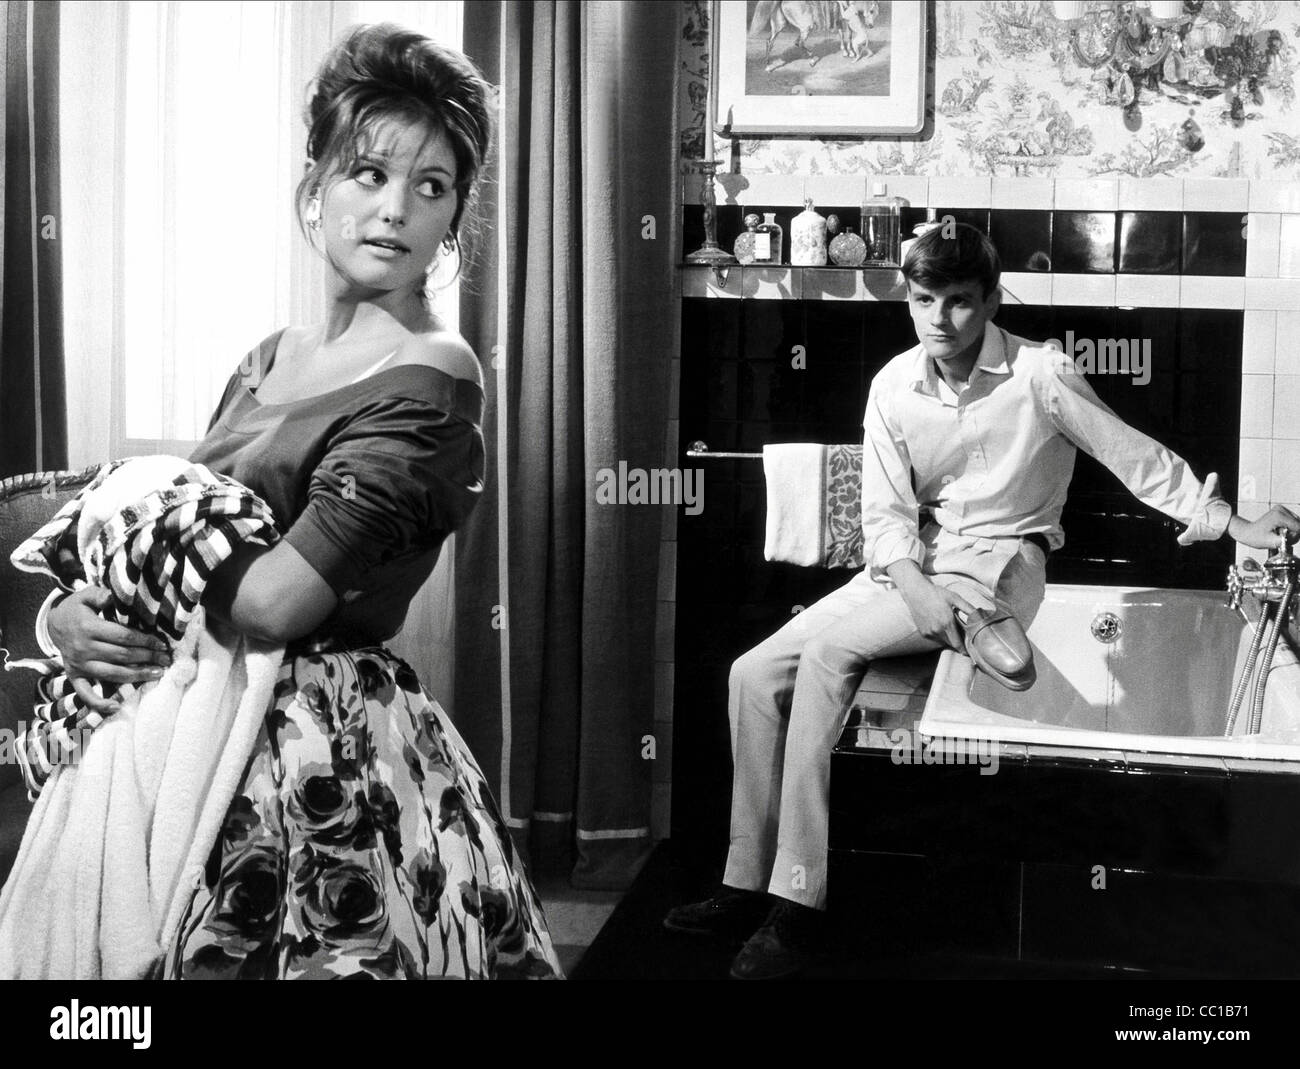 CLAUDIA CARDINALE & JACQUES PERRIN GIRL WITH A SUITCASE (1961)